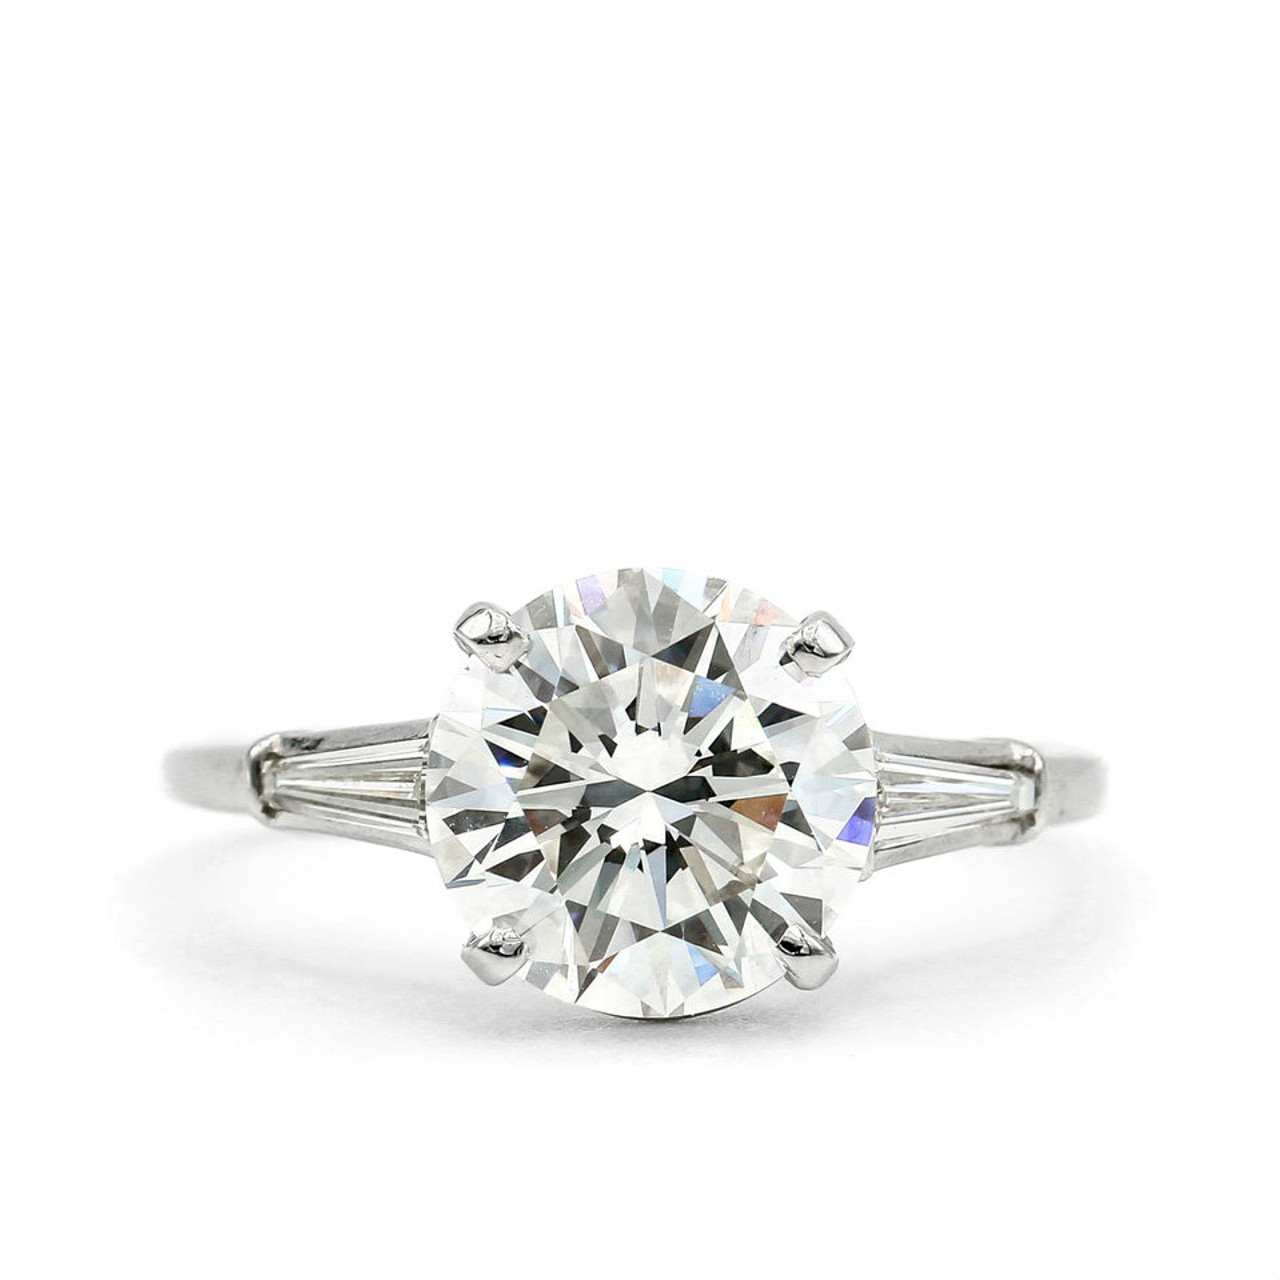 Platinum 3 44ct Round Brilliant Cut With Tapered Baguettes Lippa S Estate And Fine Jewelry